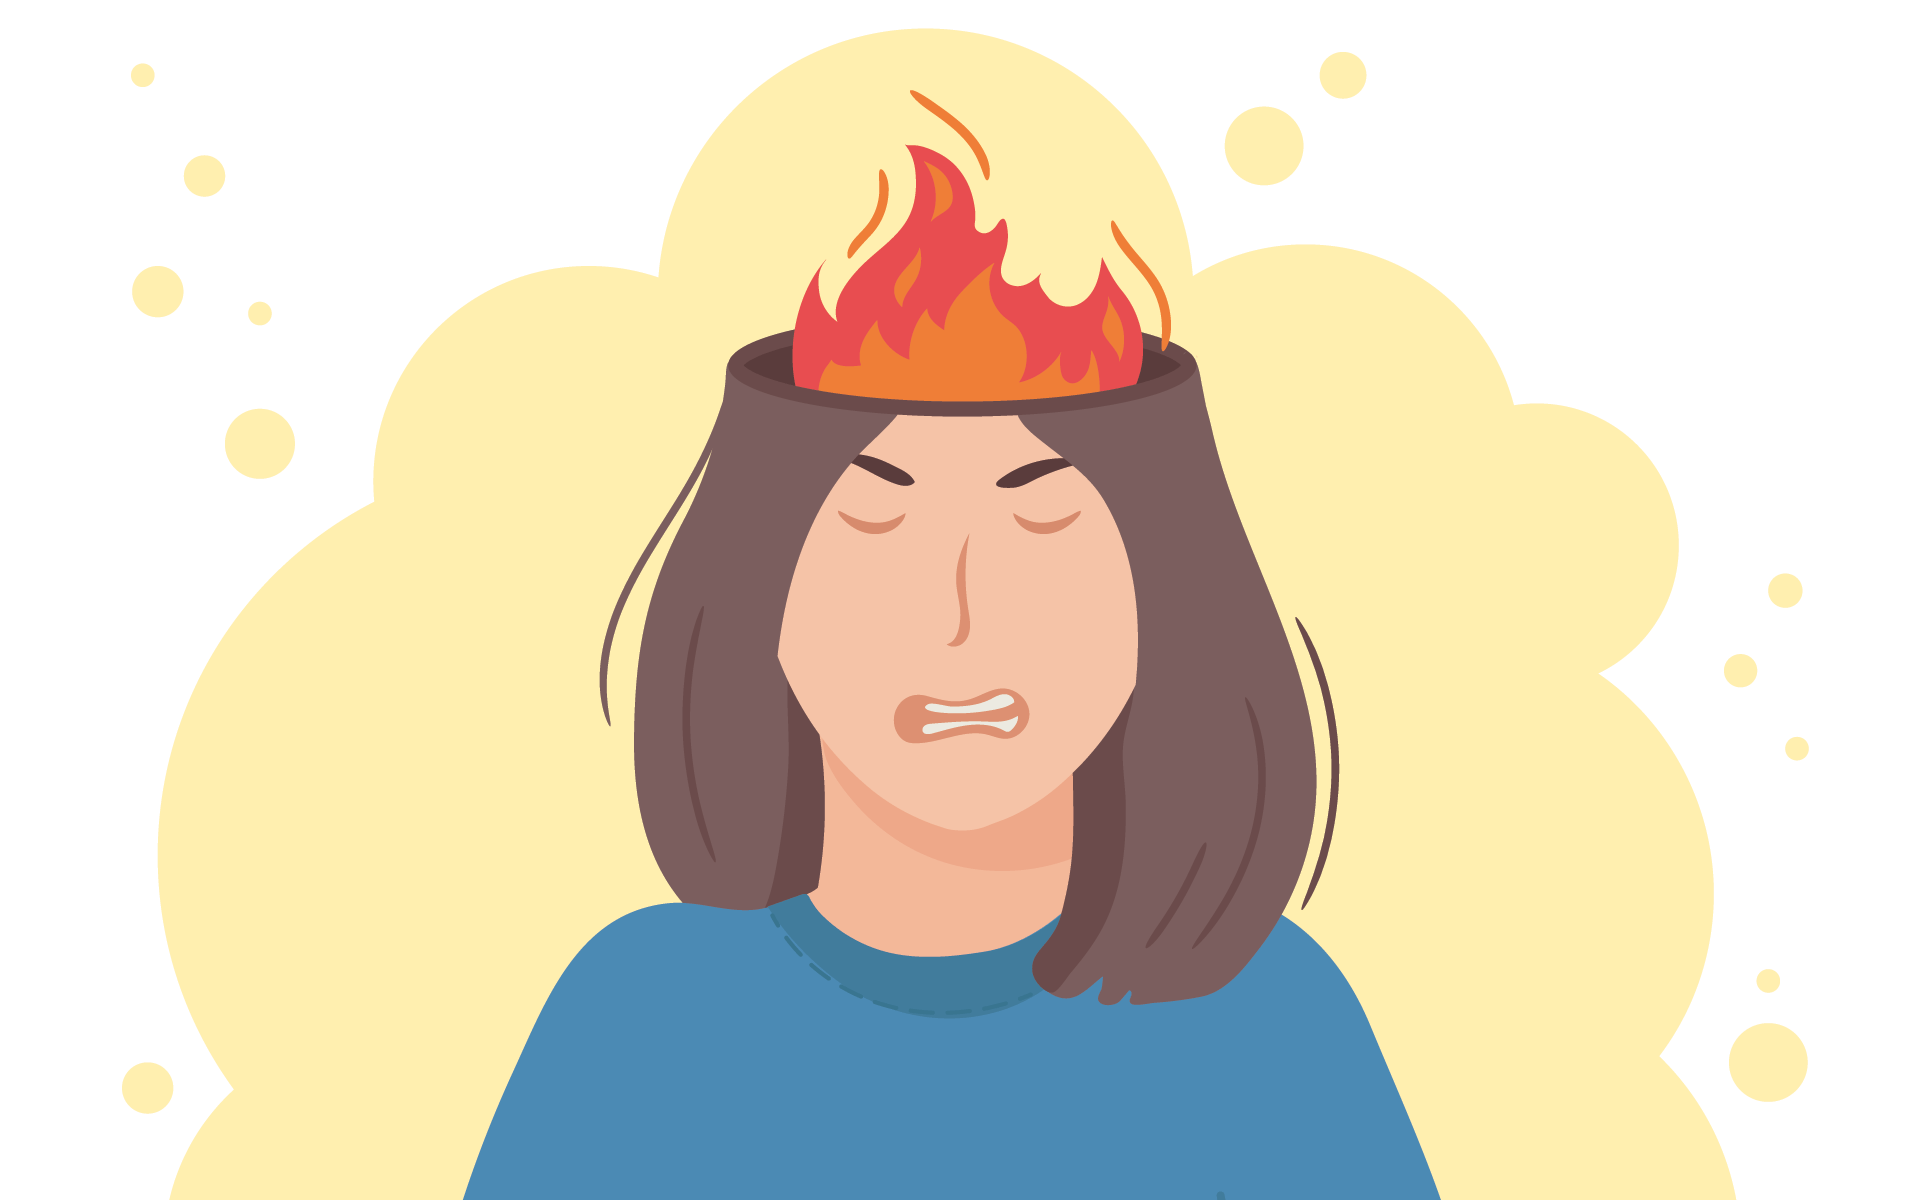 illustration of hair on fire